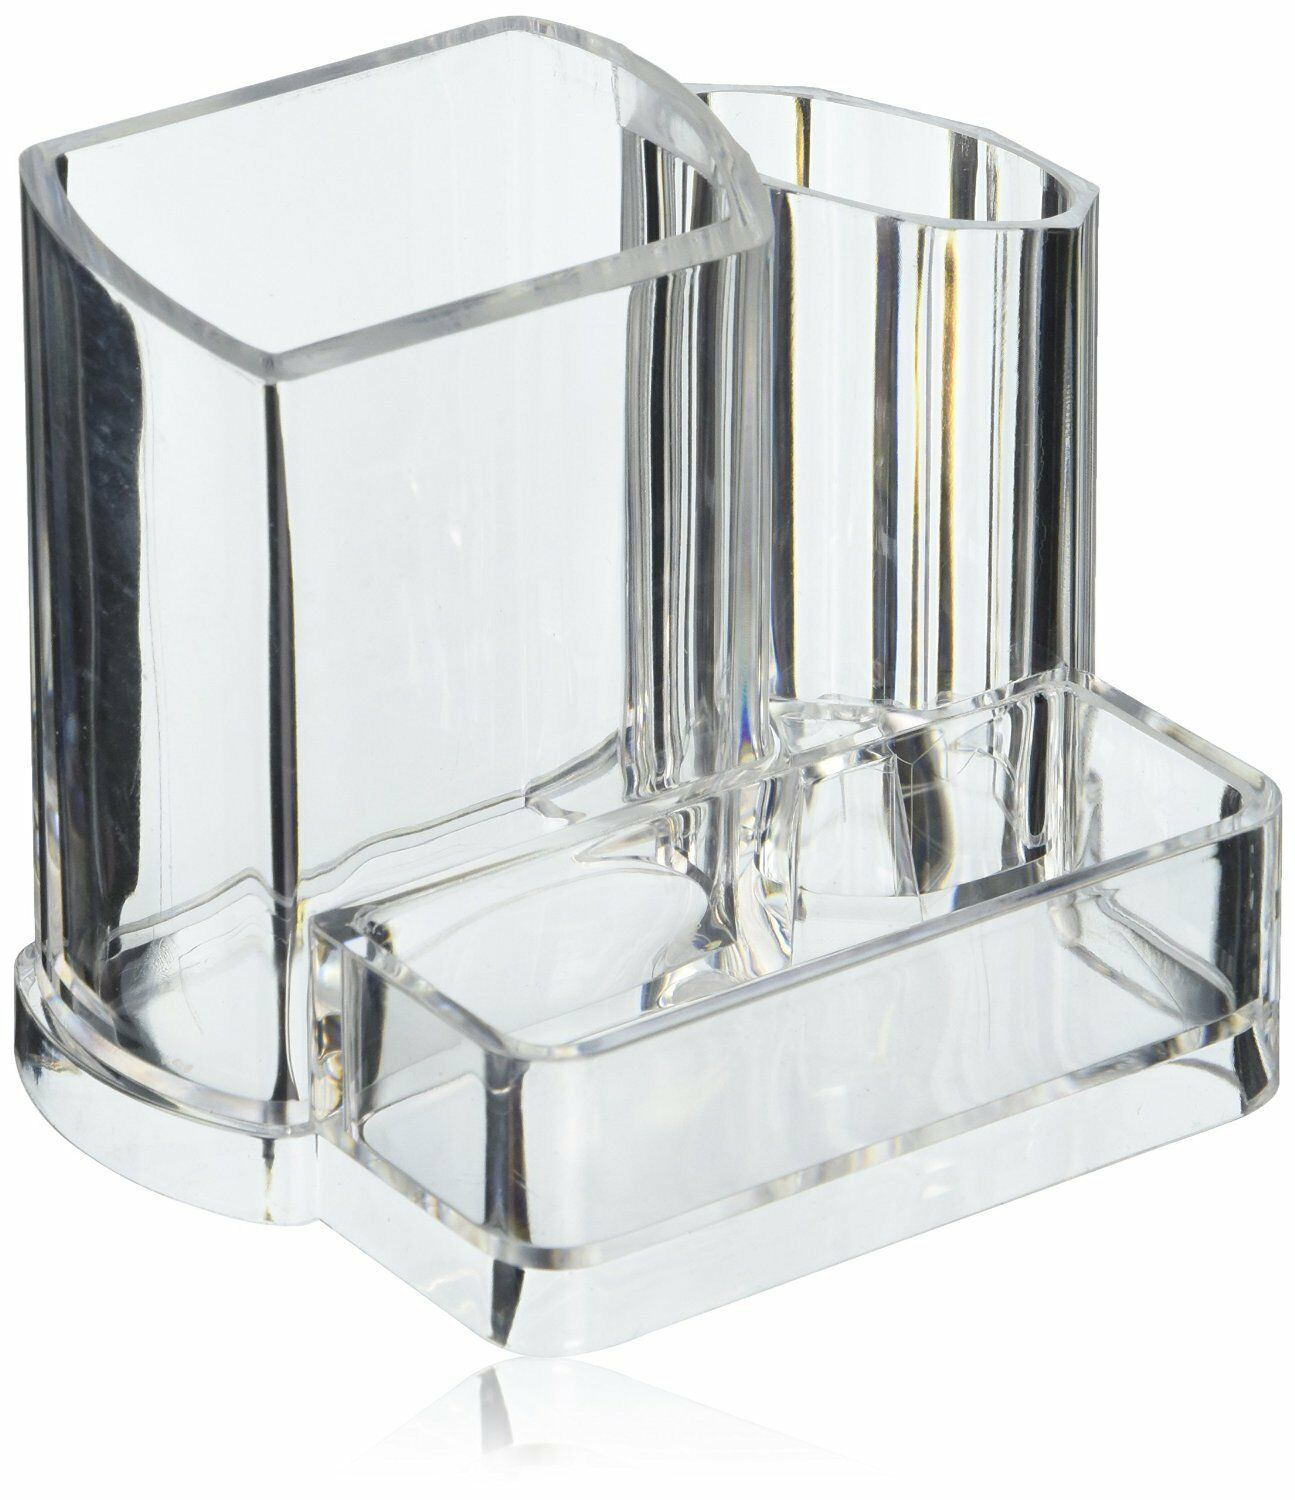 clear acrylic makeup brush and cosmetic holder with 3 compartments us seller ebay. Black Bedroom Furniture Sets. Home Design Ideas